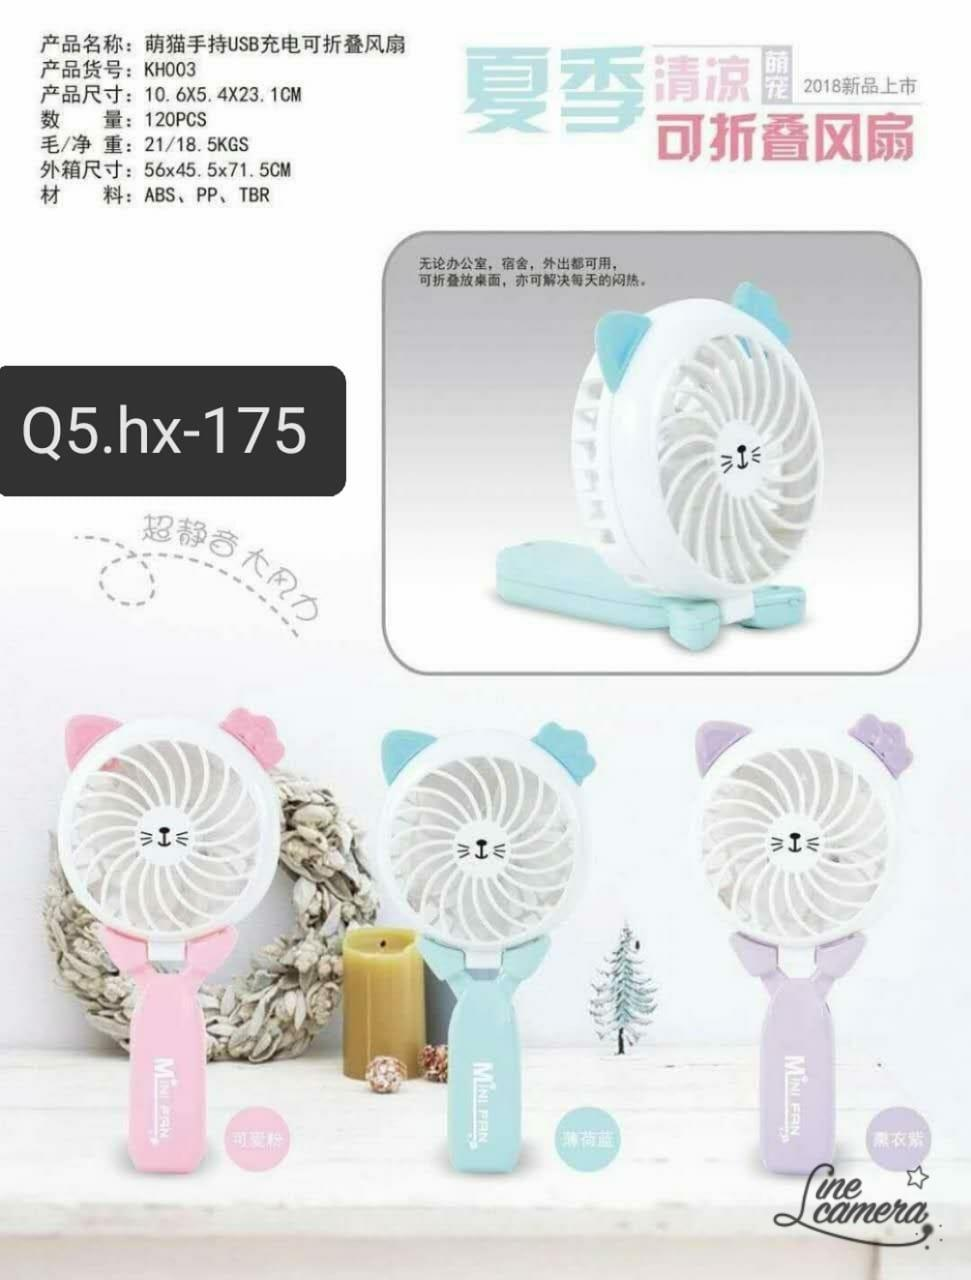 Kipas Angin Meja 7STAR - Kipas Mini Portable Travel Fresh Summer Desk Mini Fan - Random